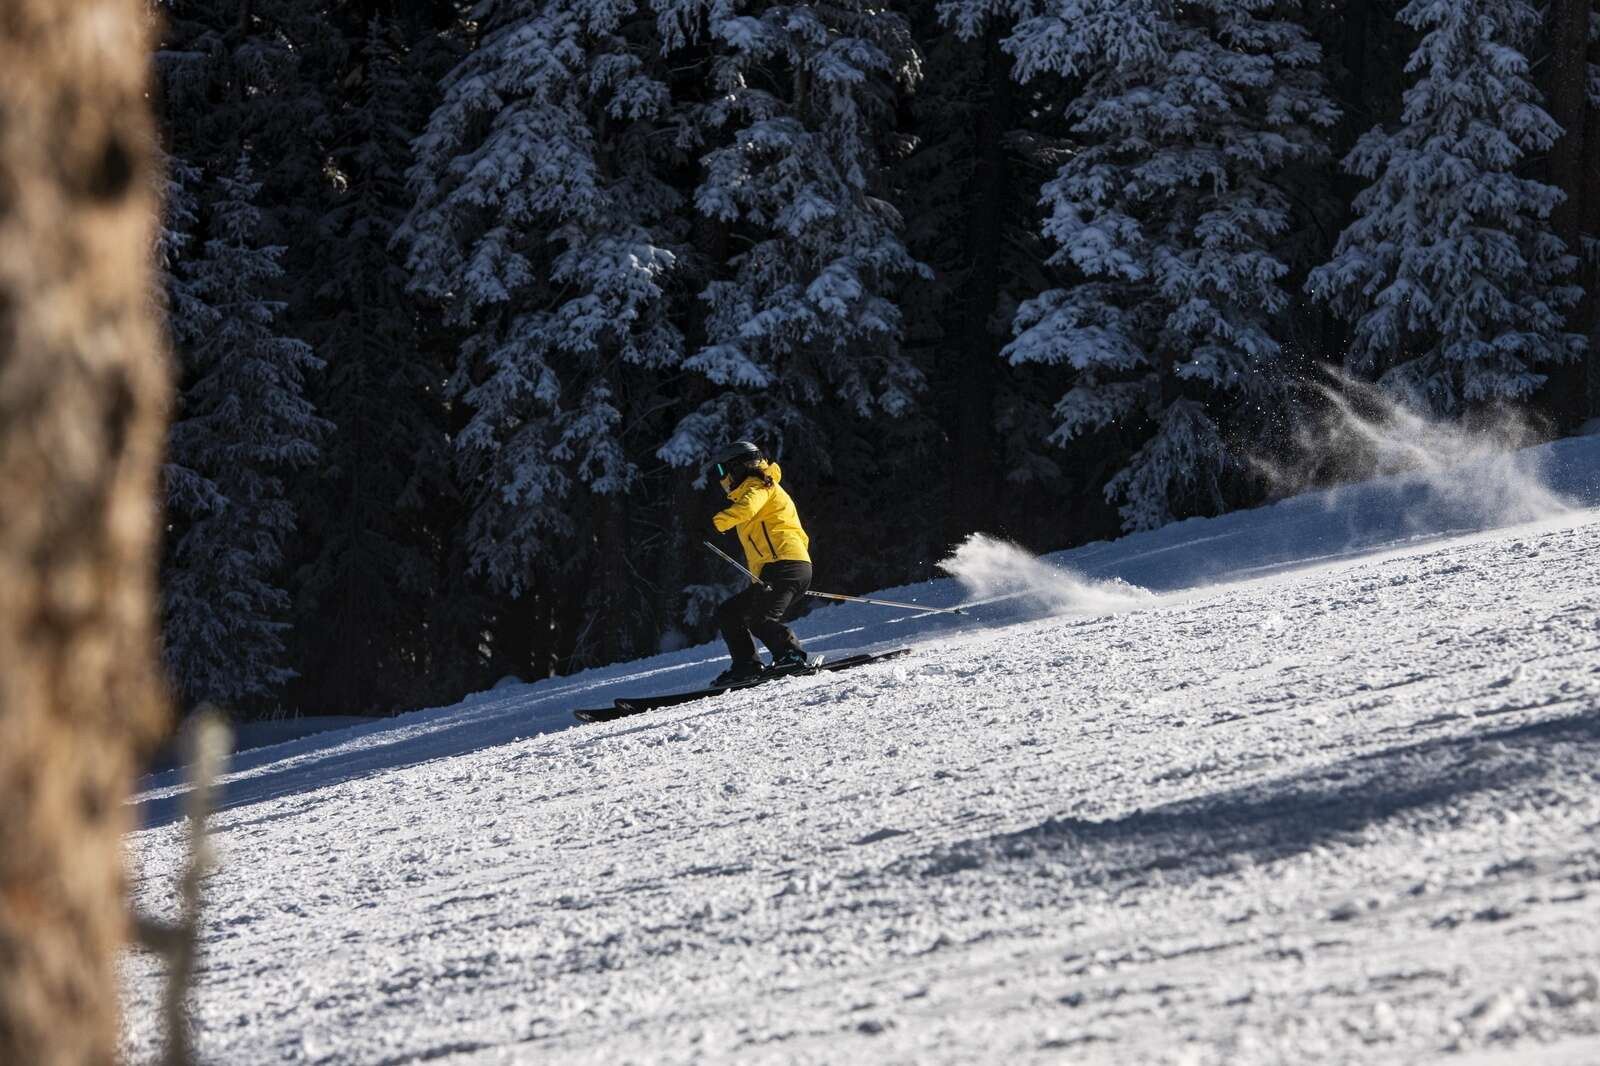 A skier carves in fresh snow on the opening day of Aspen Mountain on Wednesday, Nov. 25, 2020. (Kelsey Brunner/The Aspen Times)